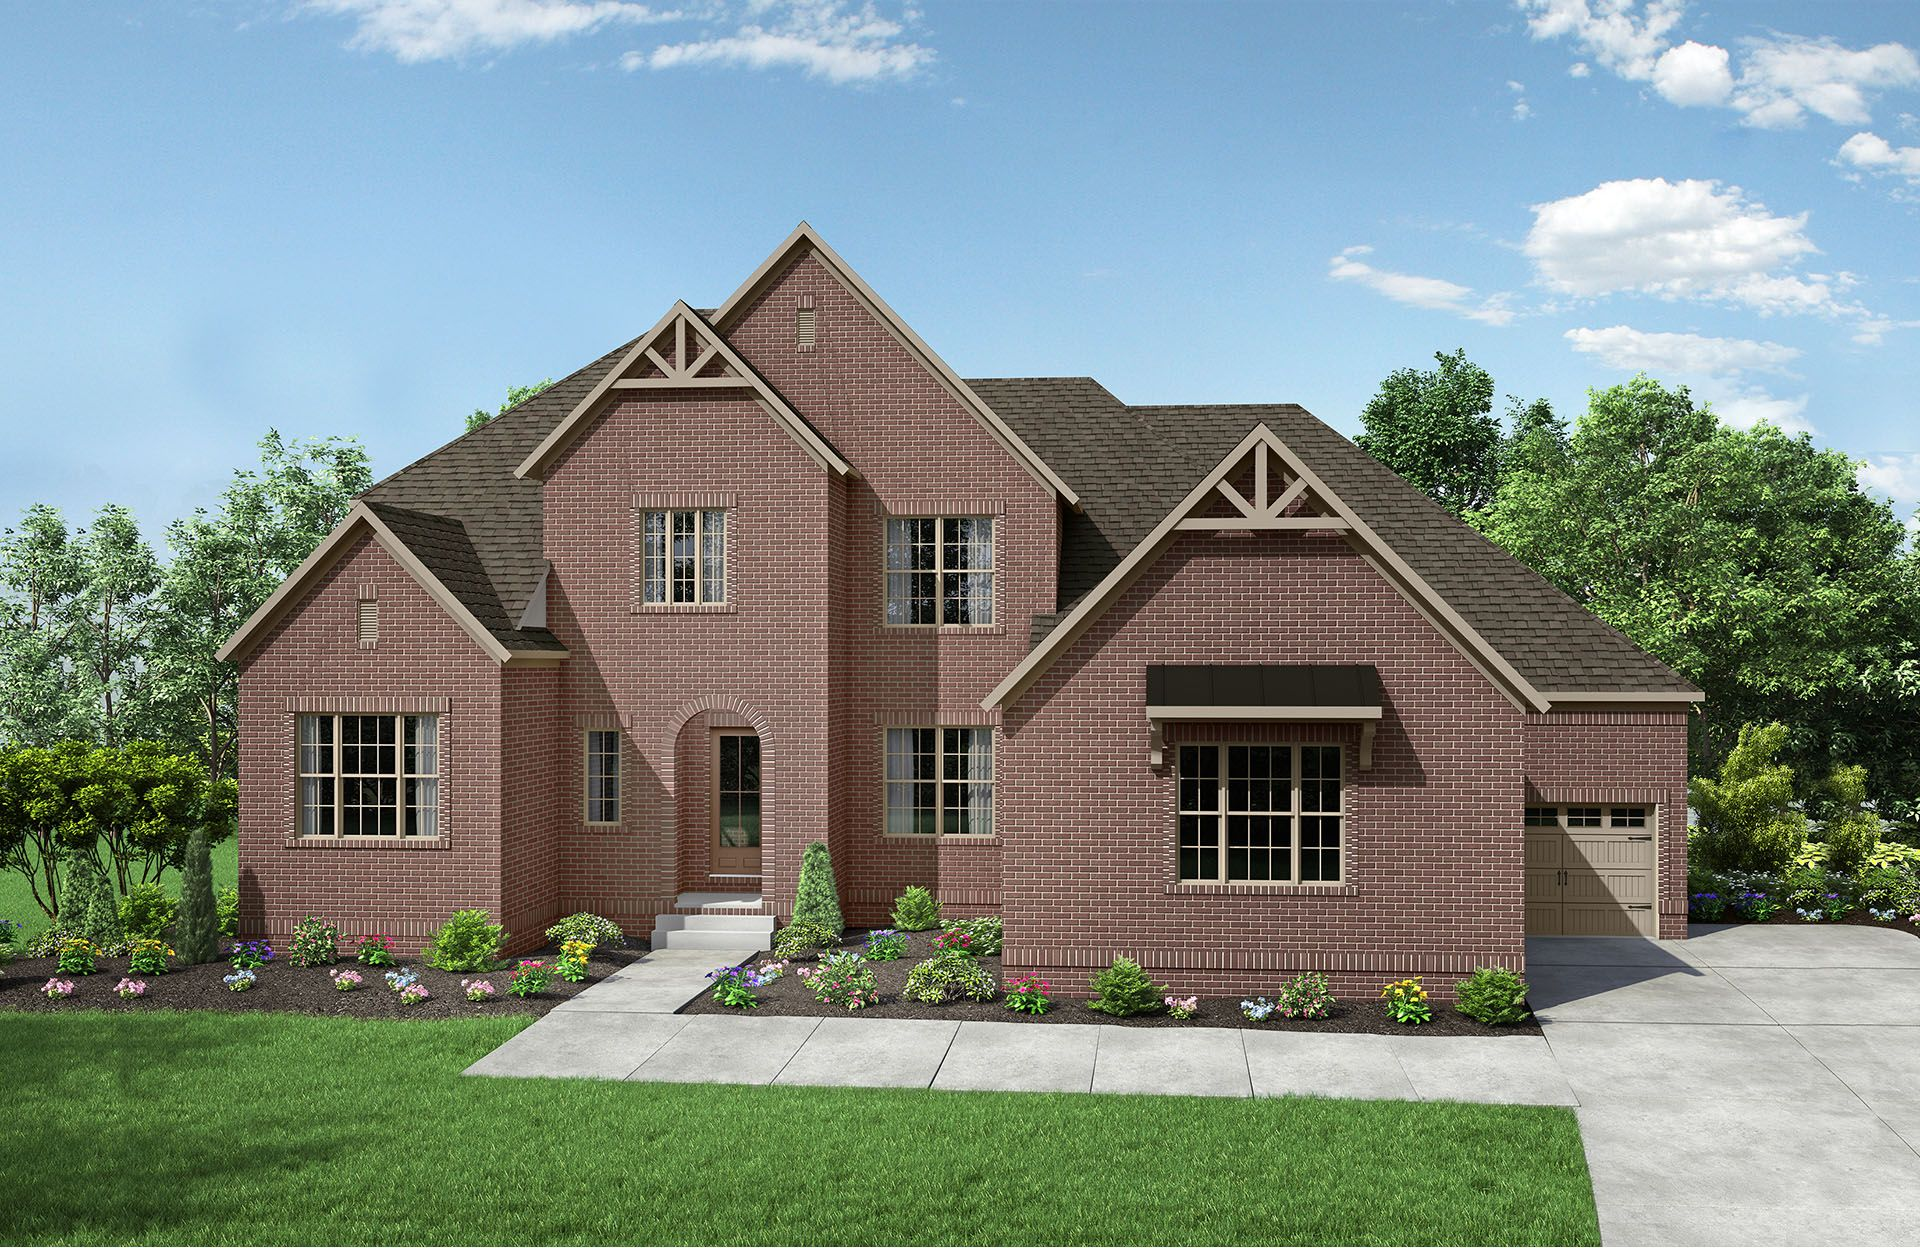 Single Family for Active at Traditions - Morrison Carnival Drive Brentwood, Tennessee 37027 United States